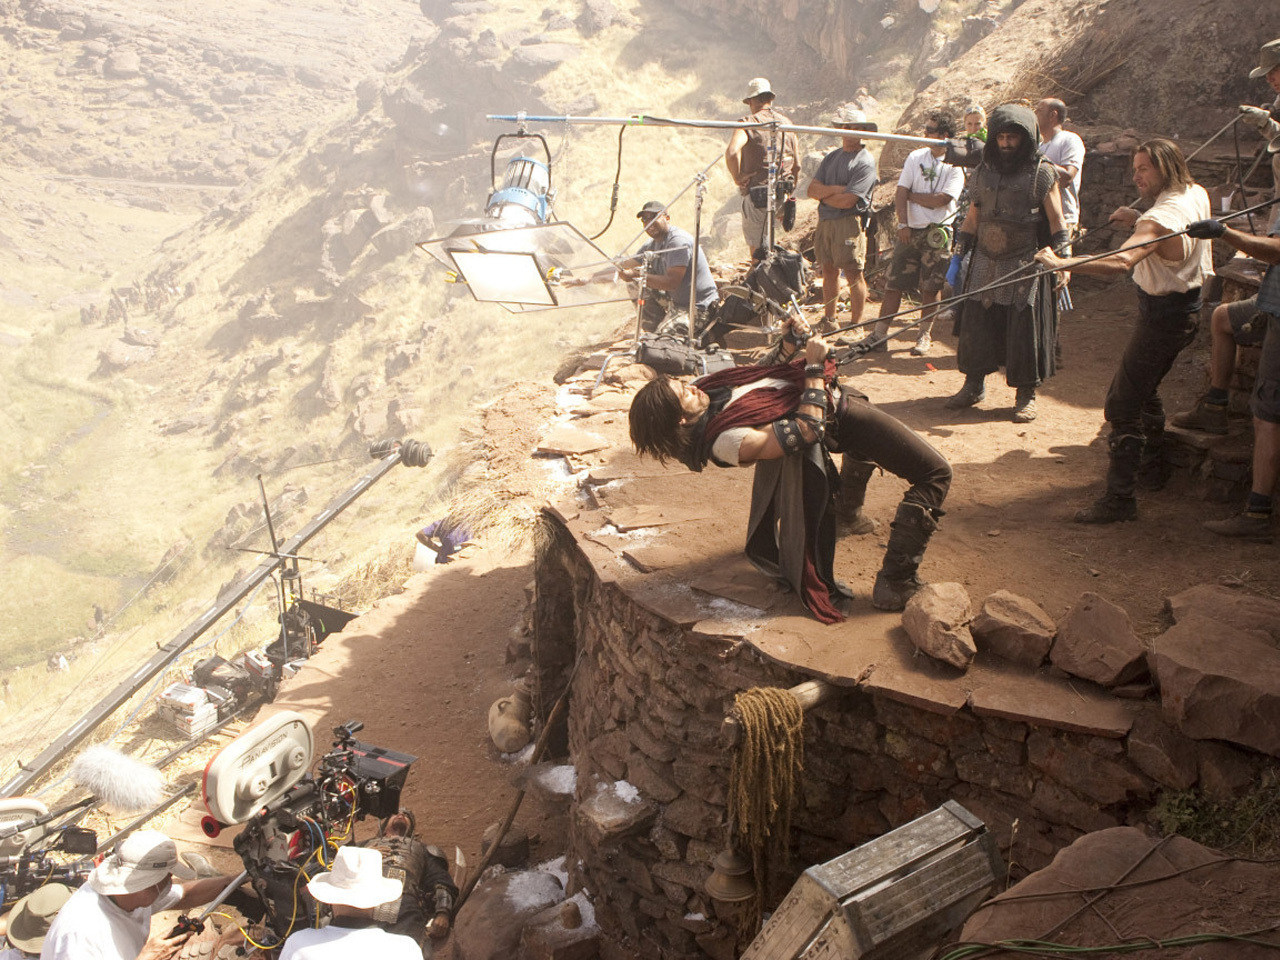 Prince of Persia: The Sands of Time Behind the Scenes Photos & Tech Specs